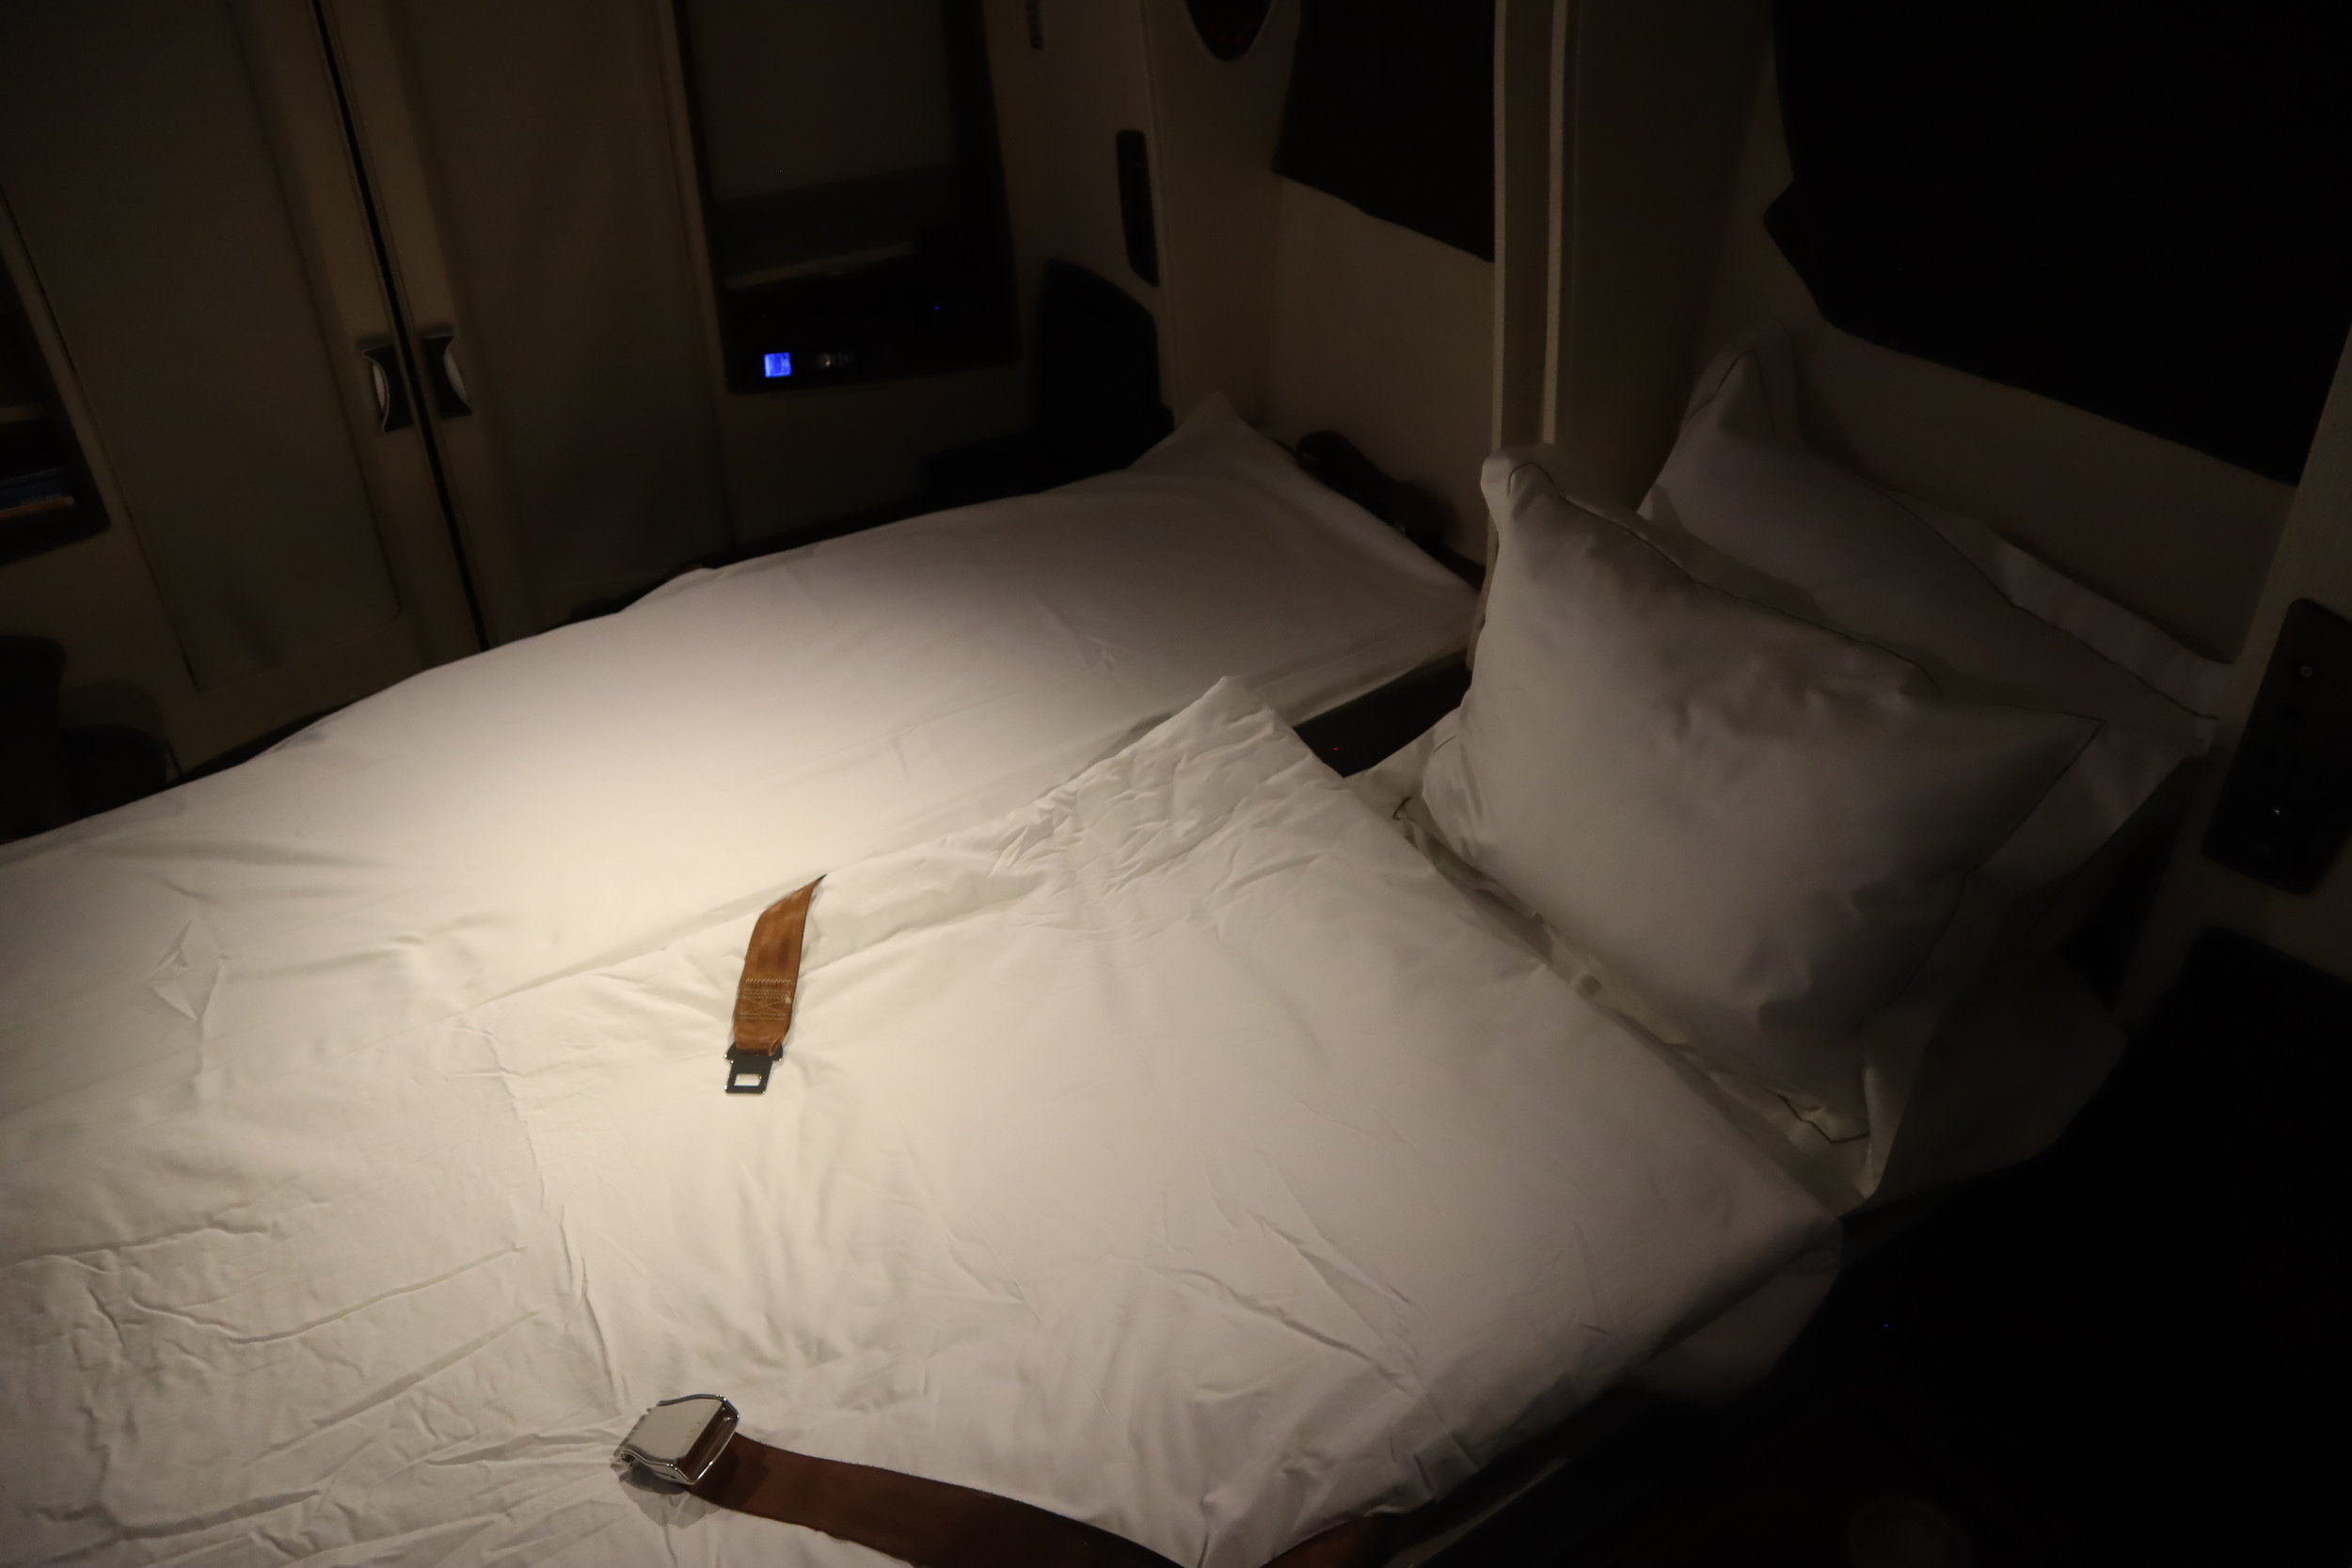 Singapore Airlines Suites Class – Double Bed in the Sky